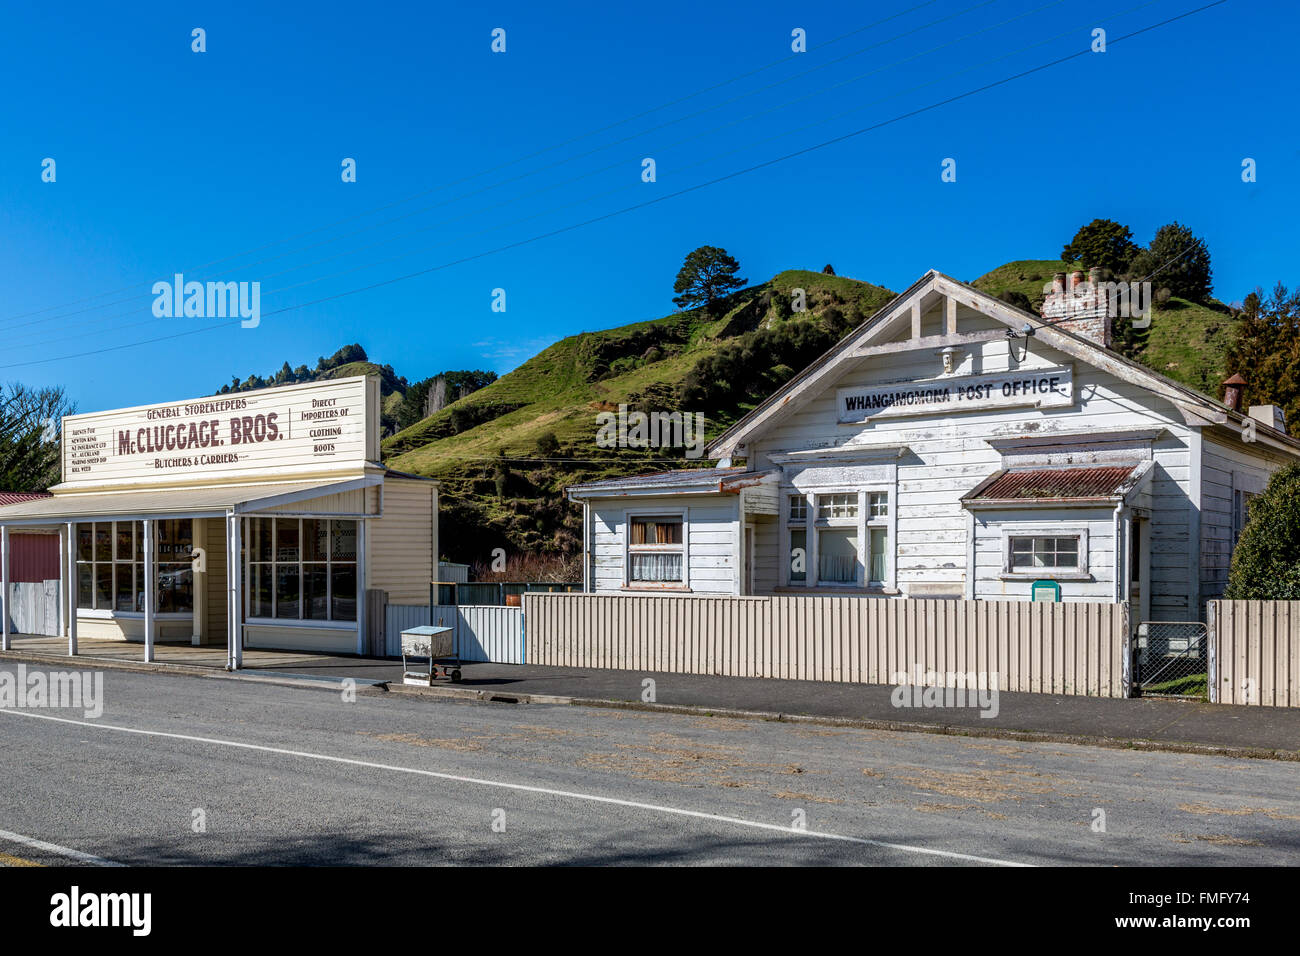 General Store at the forgotten highway in New Zealand - Stock Image